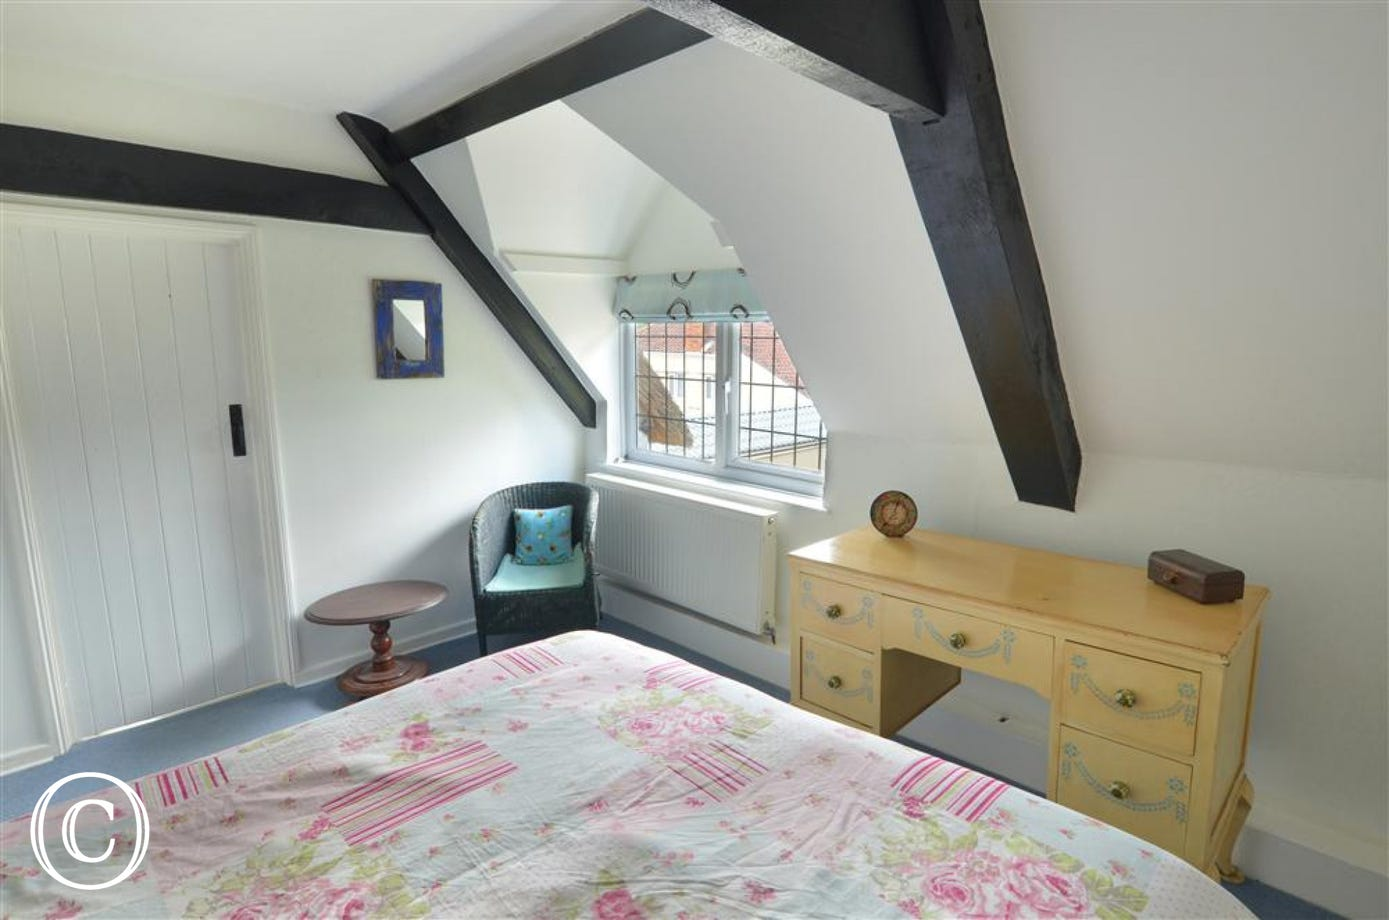 View of bedroom1, showing sloped ceiling with beams and dormer window, with dressing table below.